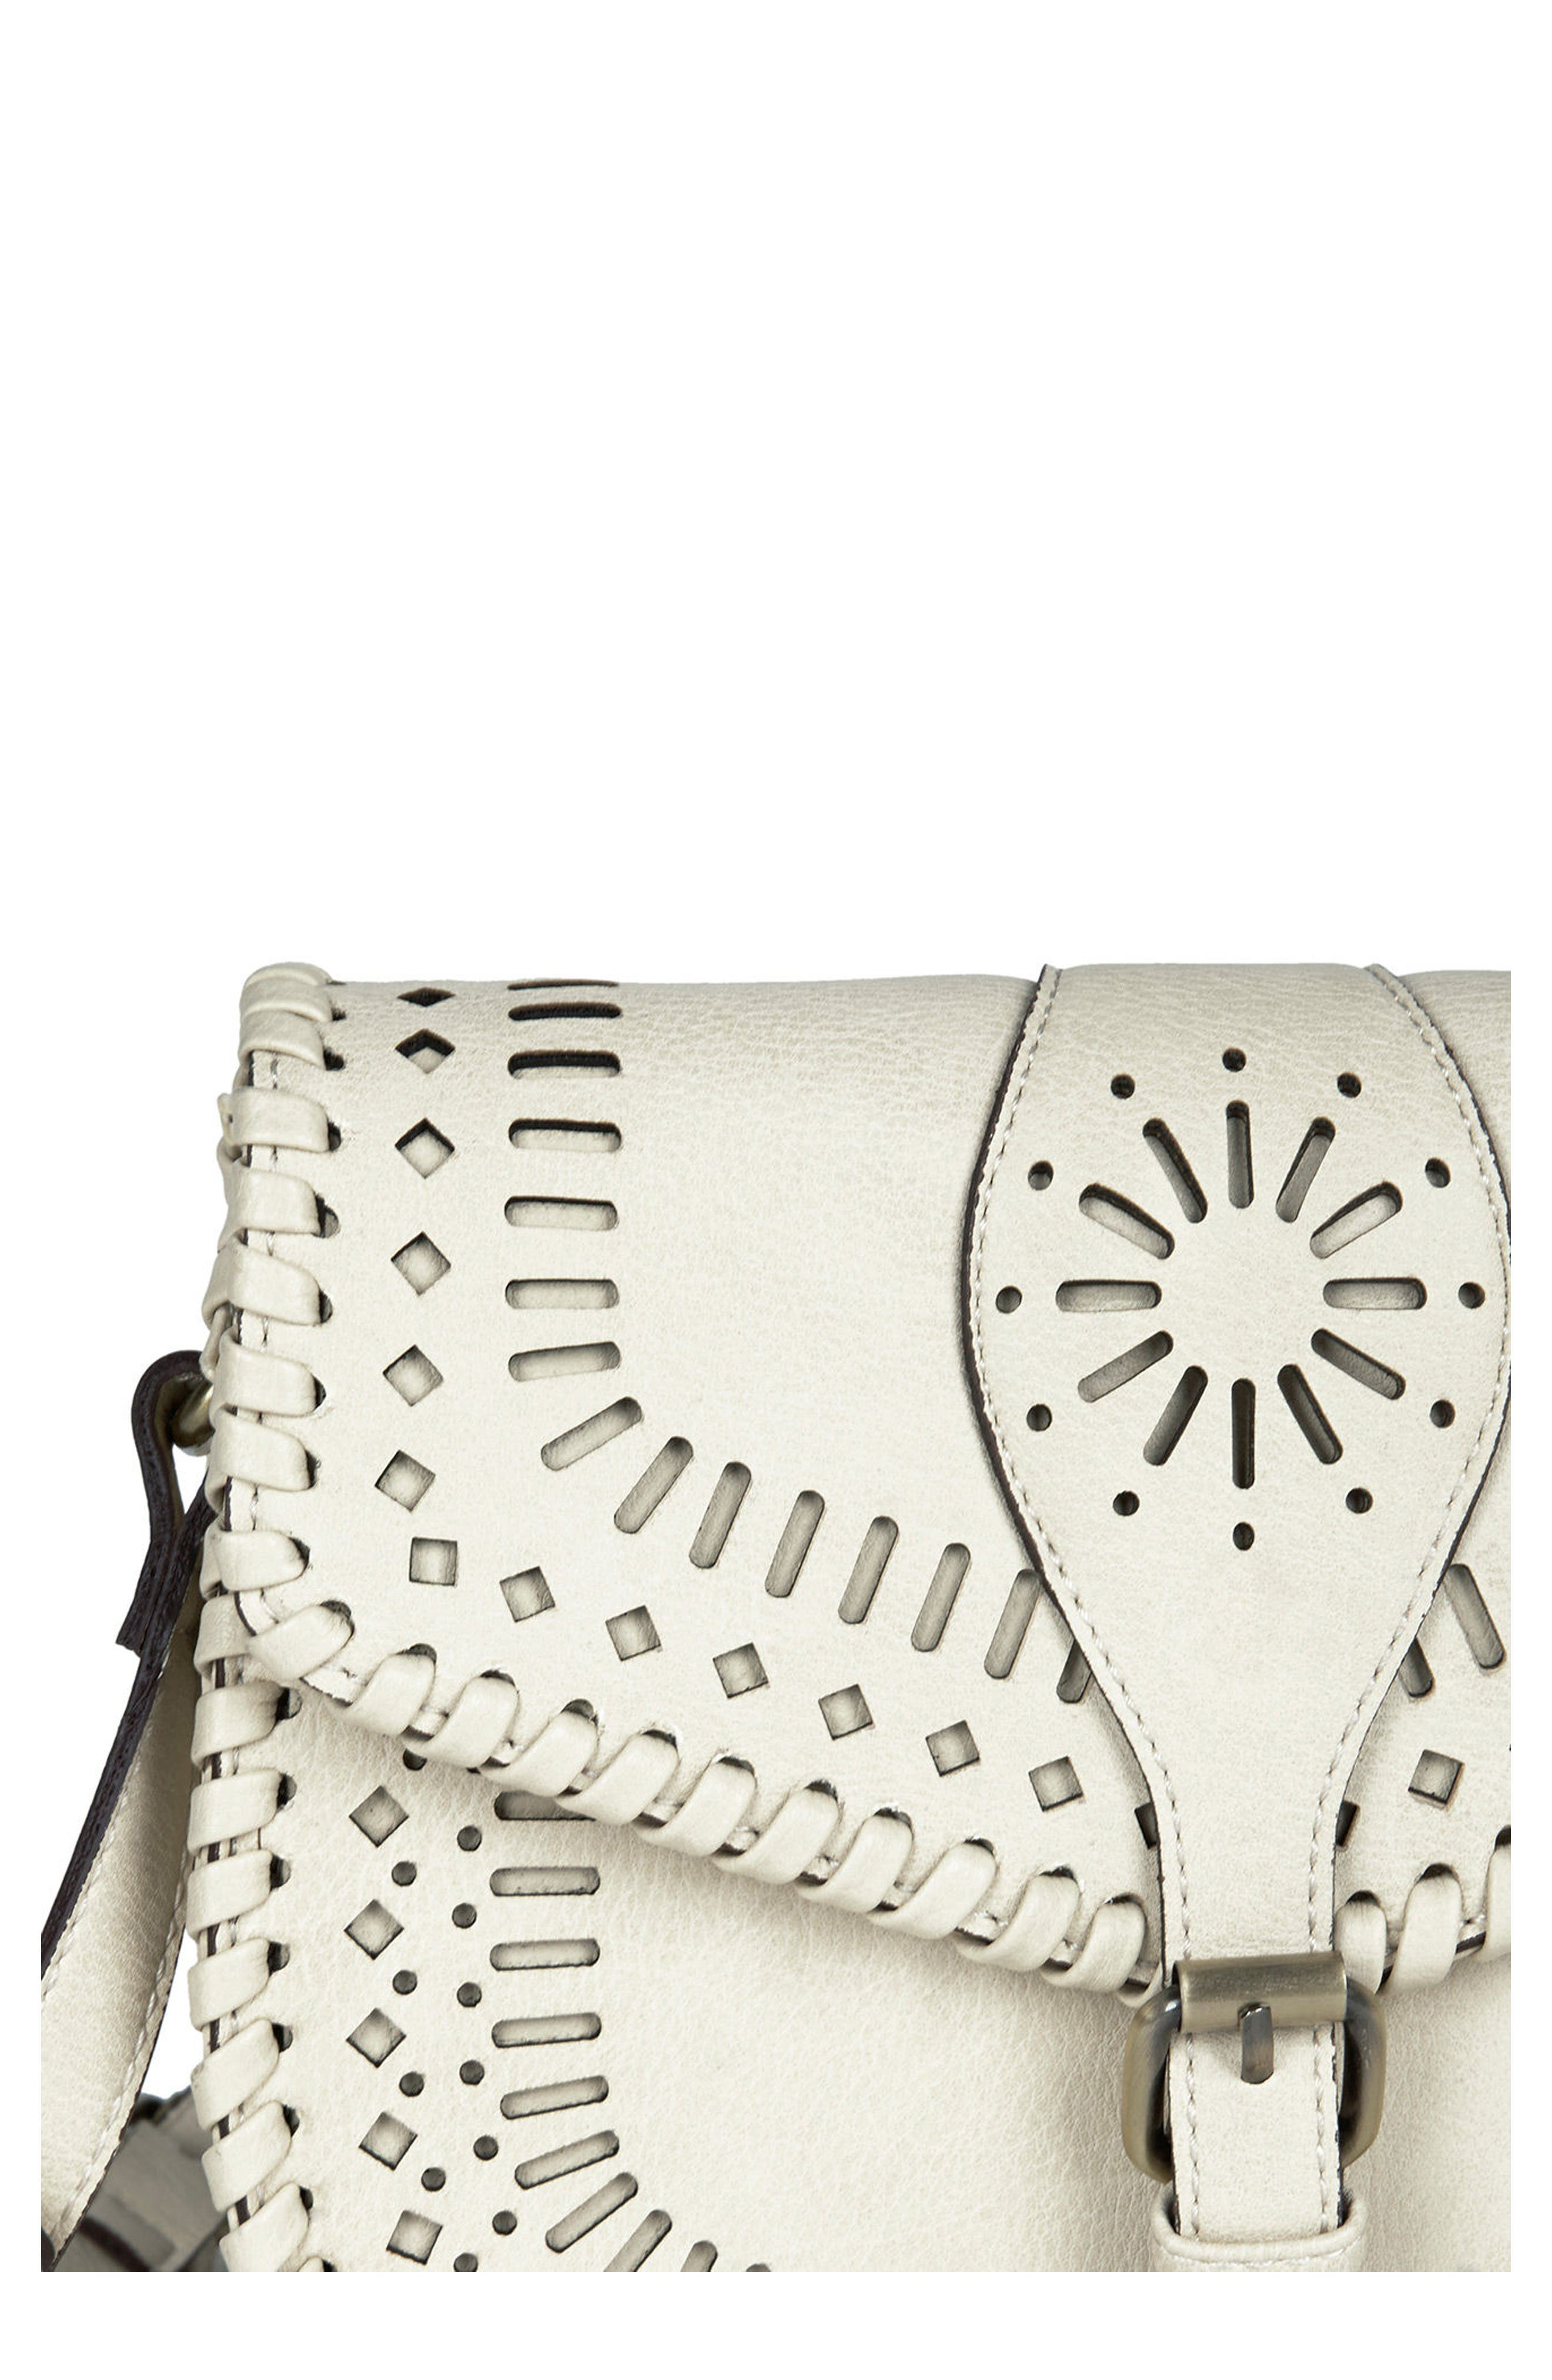 'Kianna' Perforated Faux Leather Crossbody Bag,                             Alternate thumbnail 6, color,